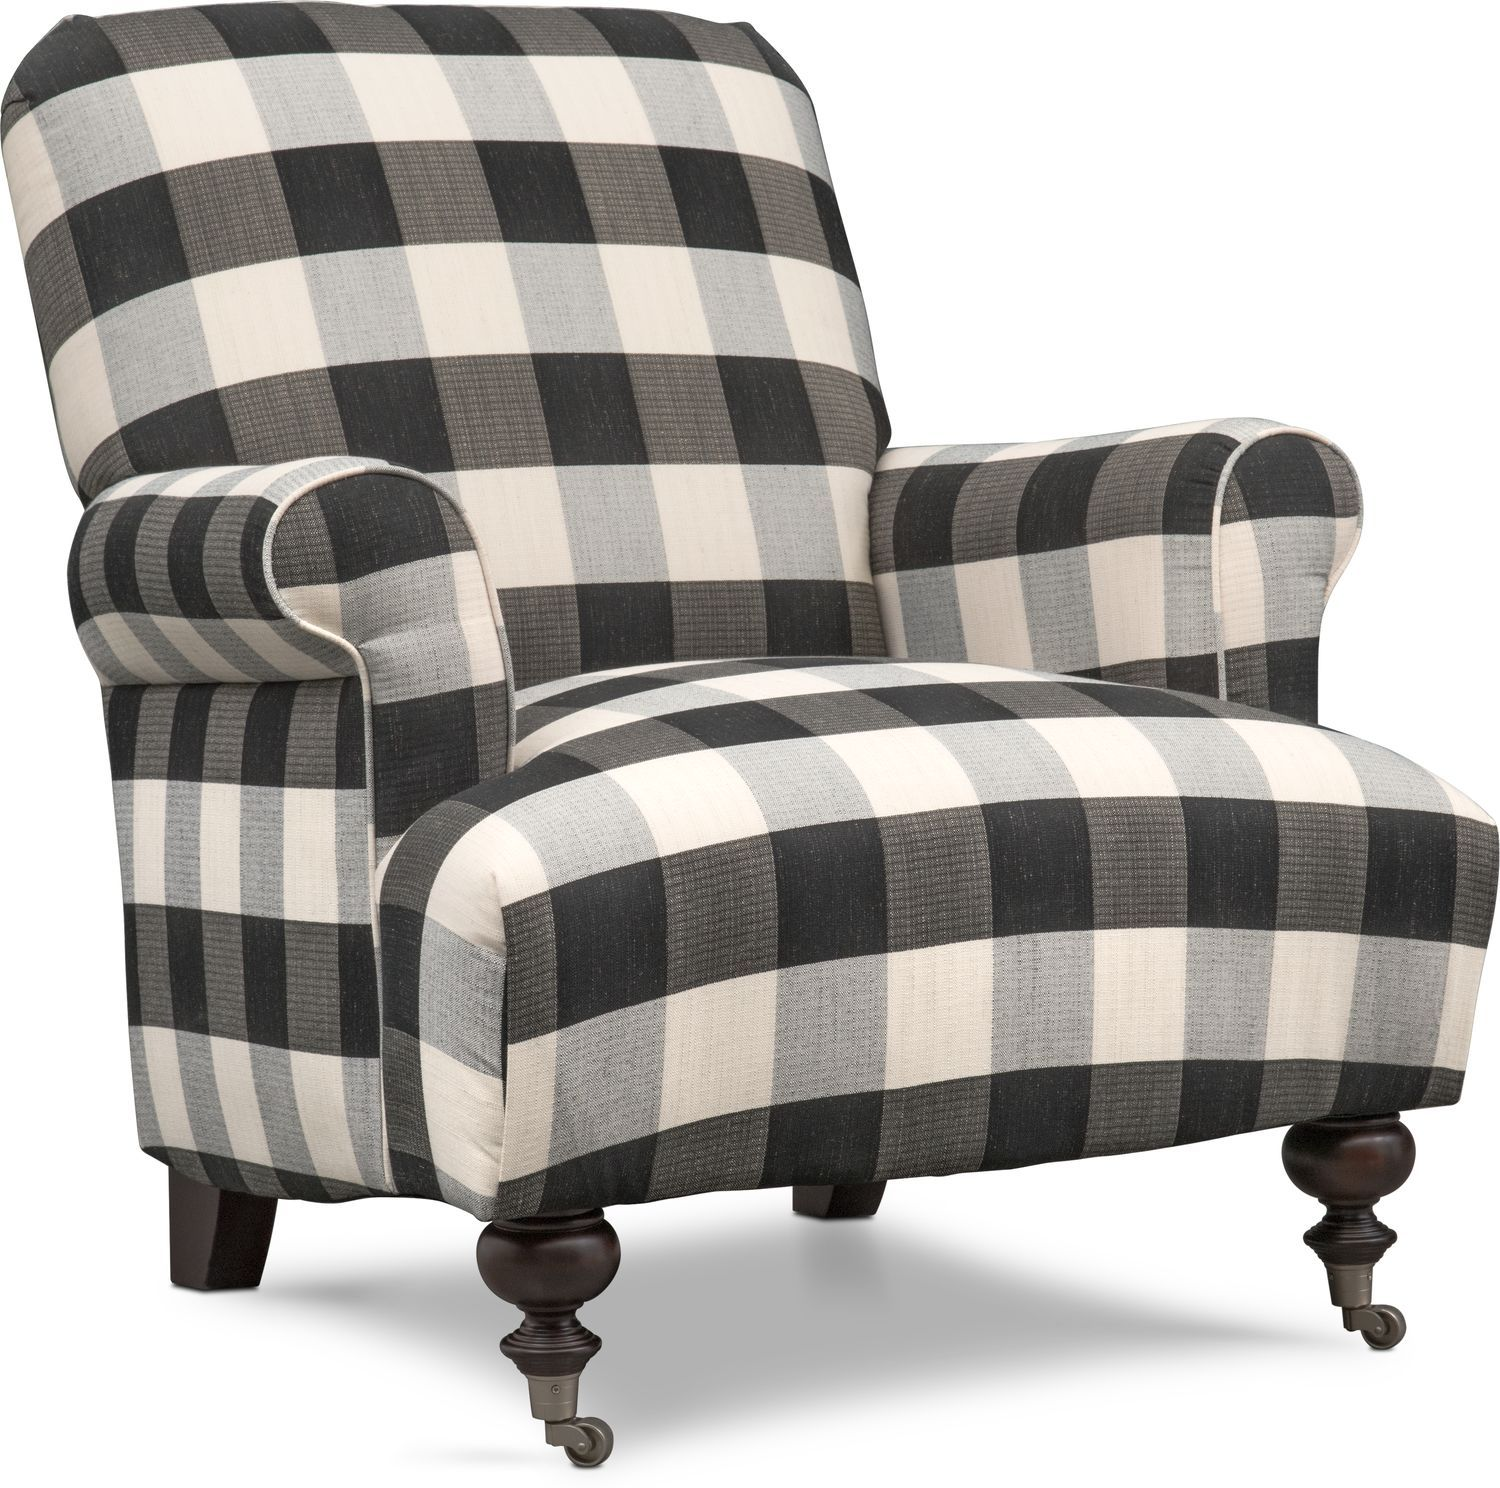 Astounding Rhys Accent Chair Black And White In 2019 Living Room Theyellowbook Wood Chair Design Ideas Theyellowbookinfo